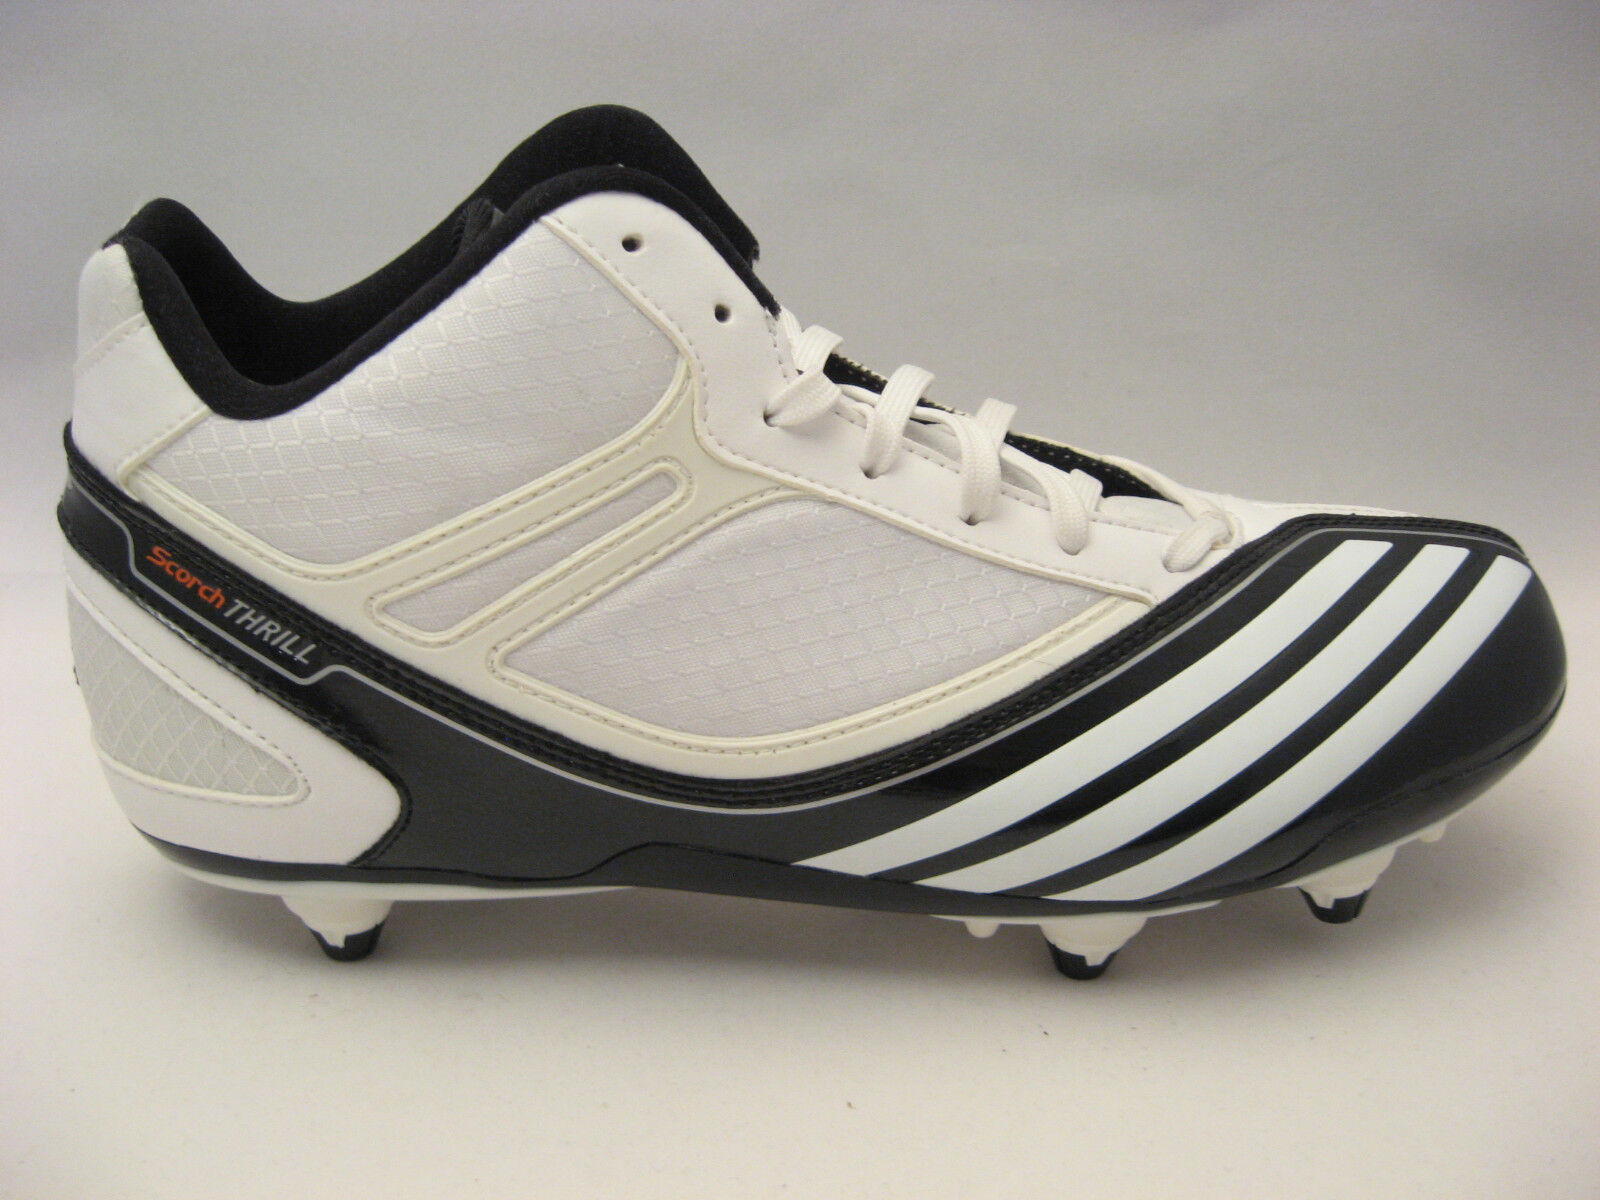 NEW Mens 8 adidas Football Cleats Size 8 Mens Scorch Thrill Mid D White Black Shoes 99 103122